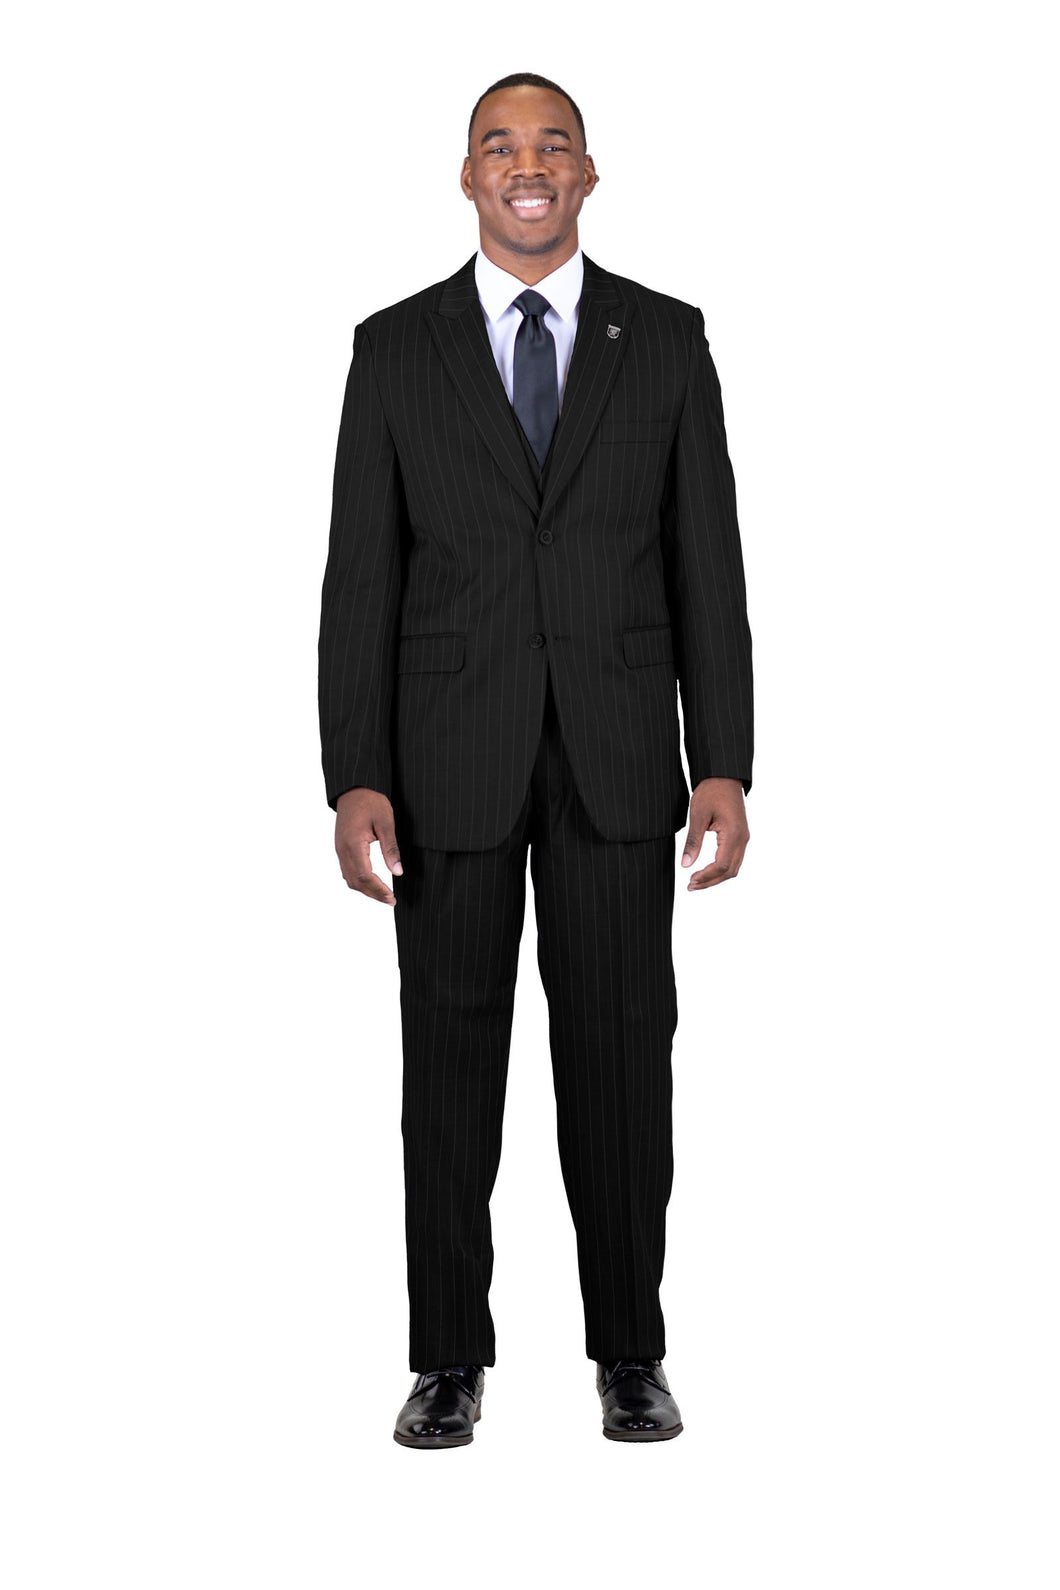 Stacy Adams Single Breasted 2 Button Suit - 4017 MARS VESTED (3 Colors)